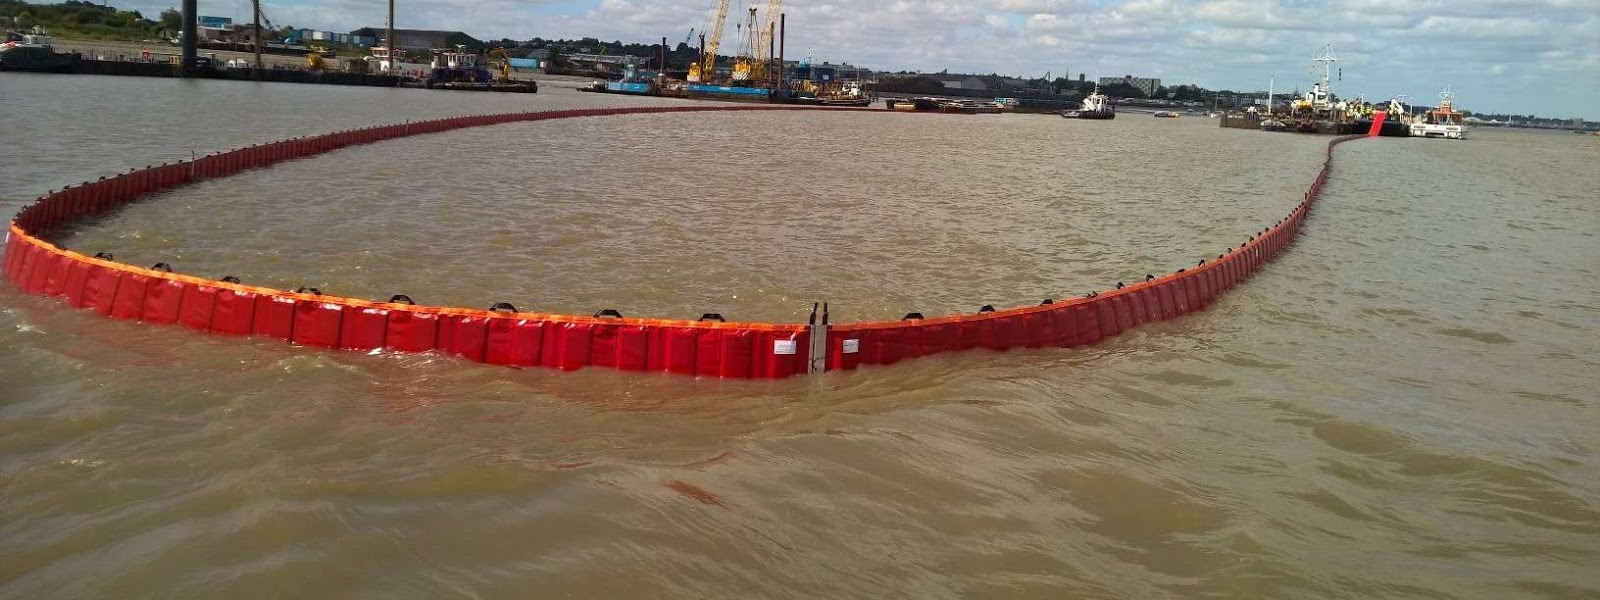 A red fob boom in the sea